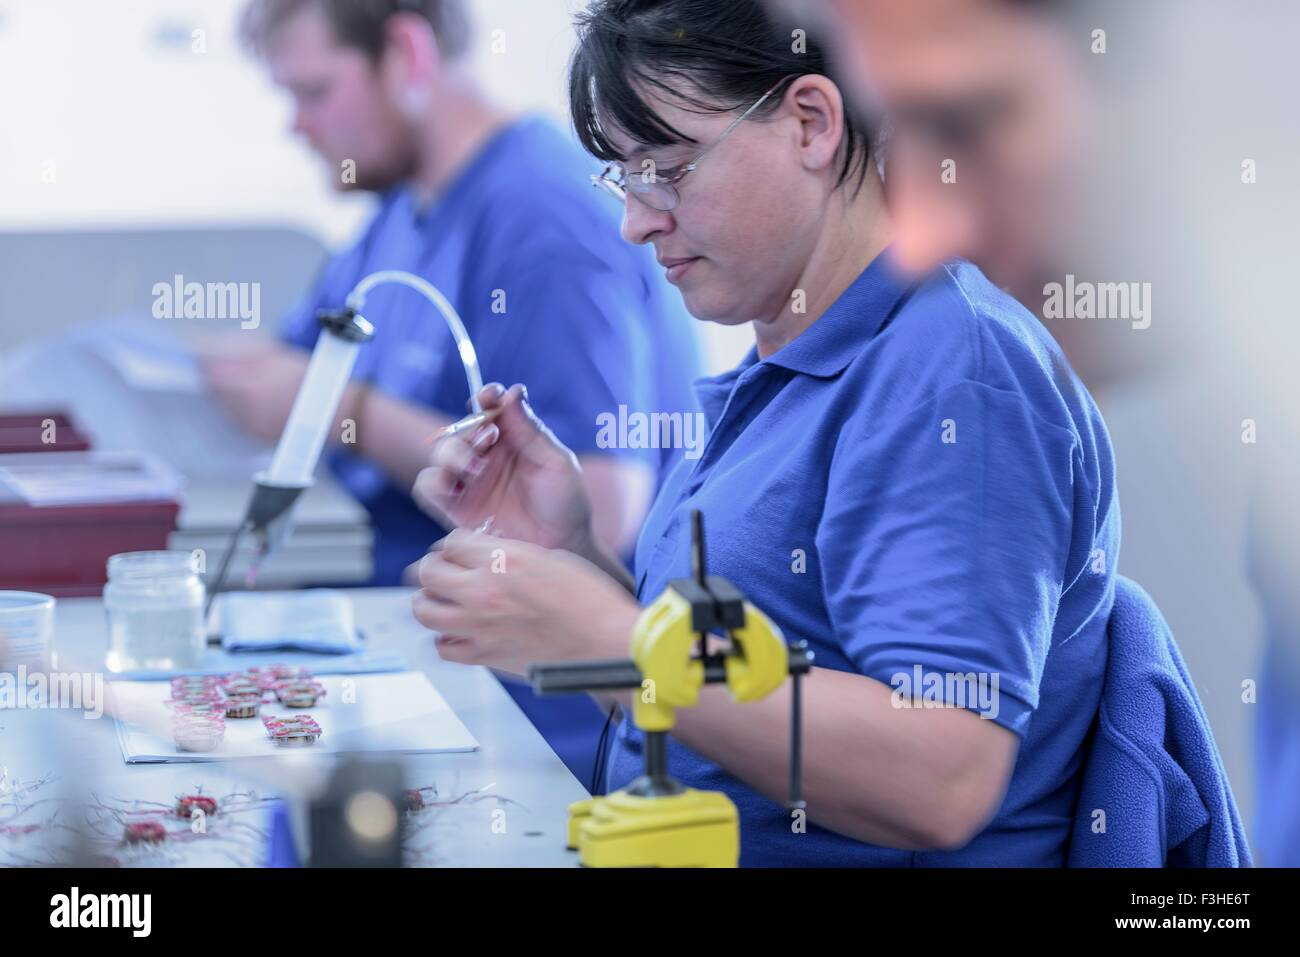 Female worker assembling electromagnets on production line in electronics factory - Stock Image